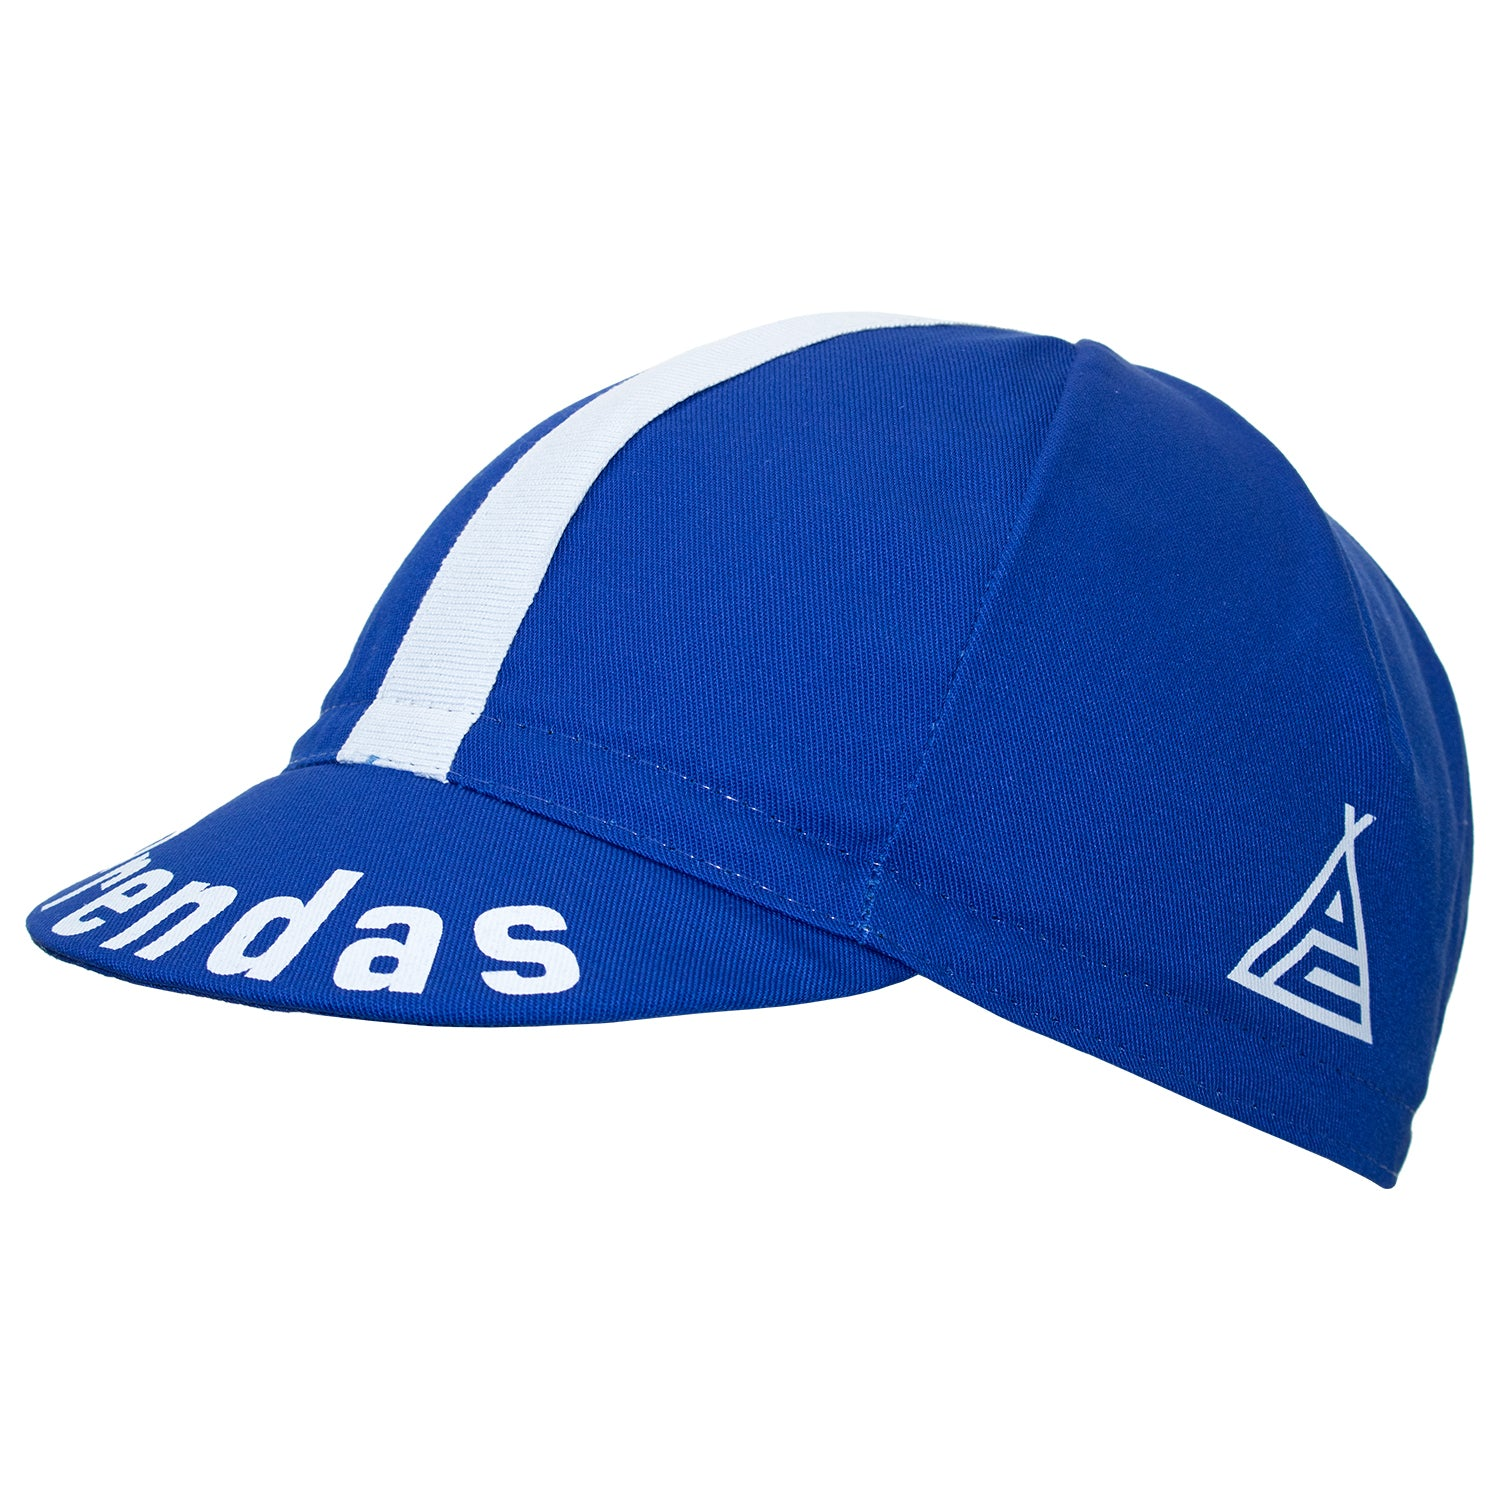 Prendas il Grande Blue Cotton Cycling Cap | Headwear